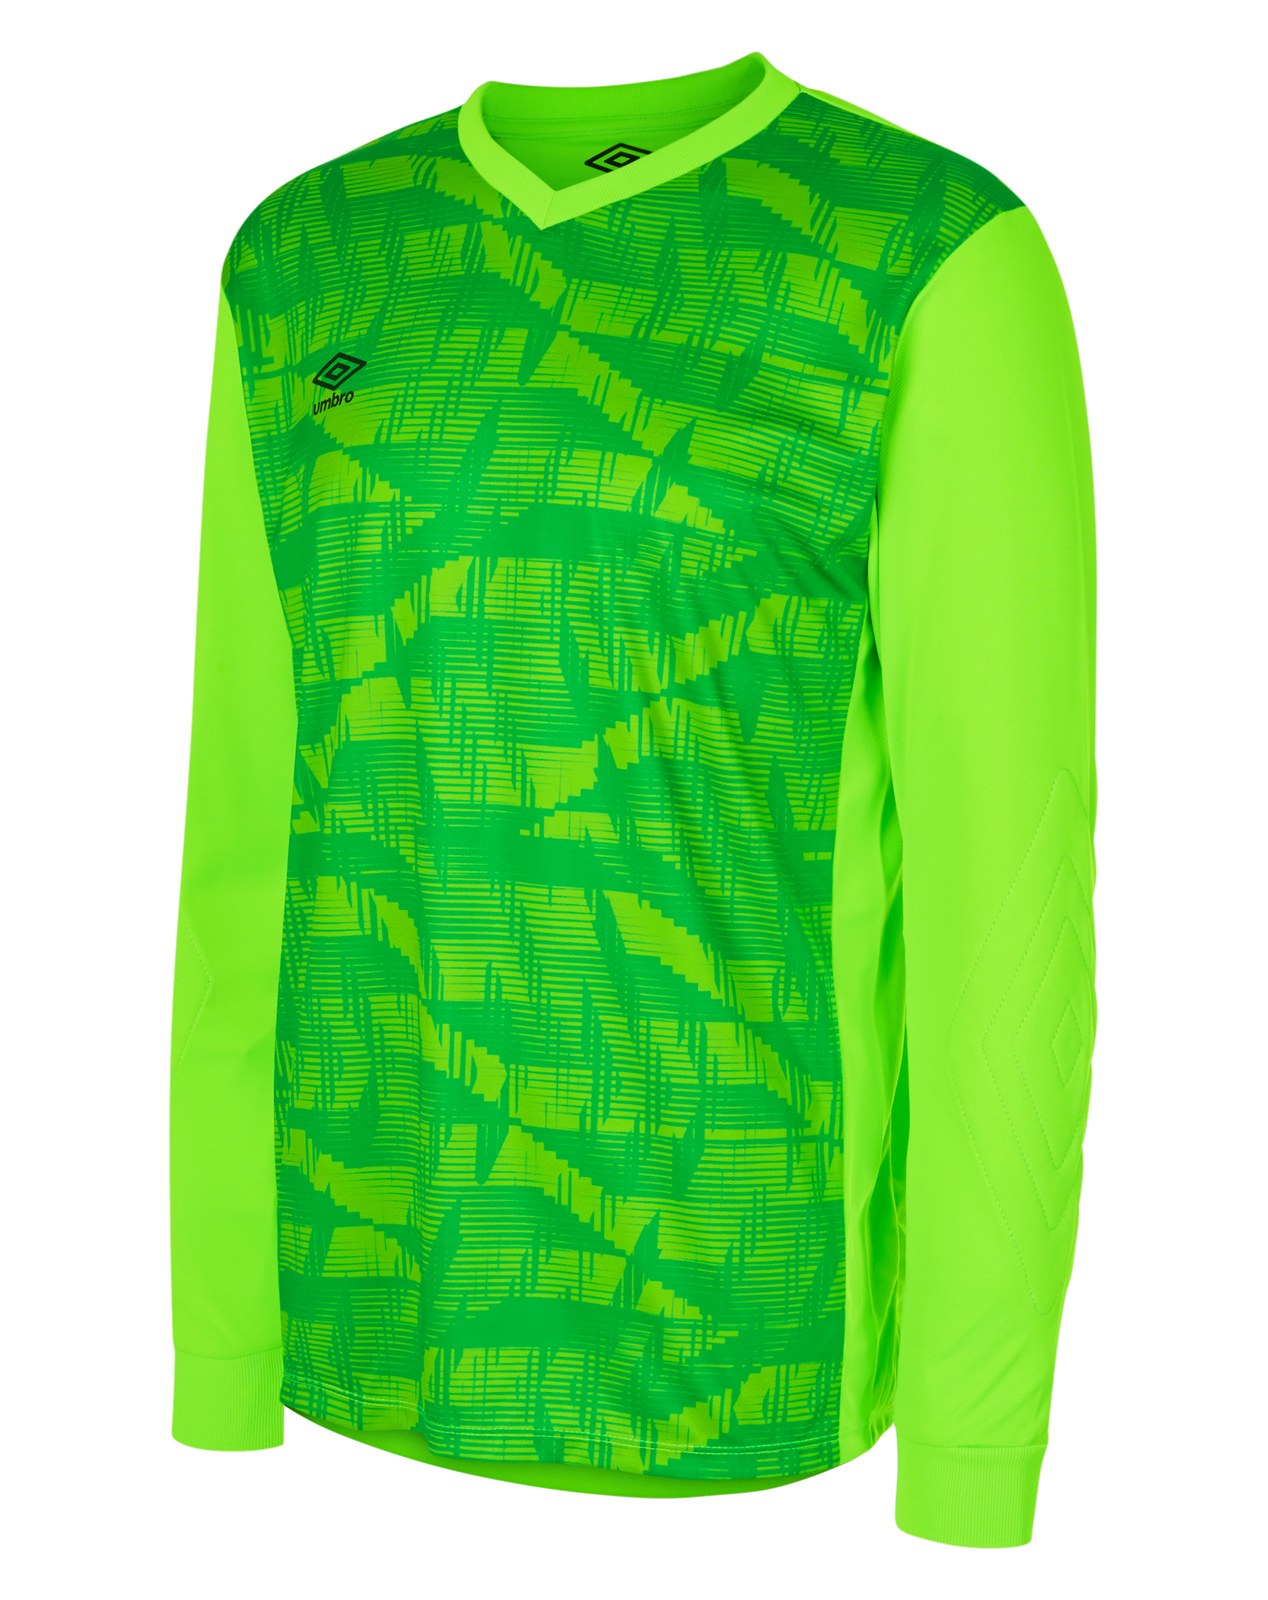 Umbro Counter Jersey in Green gecko long sleeve